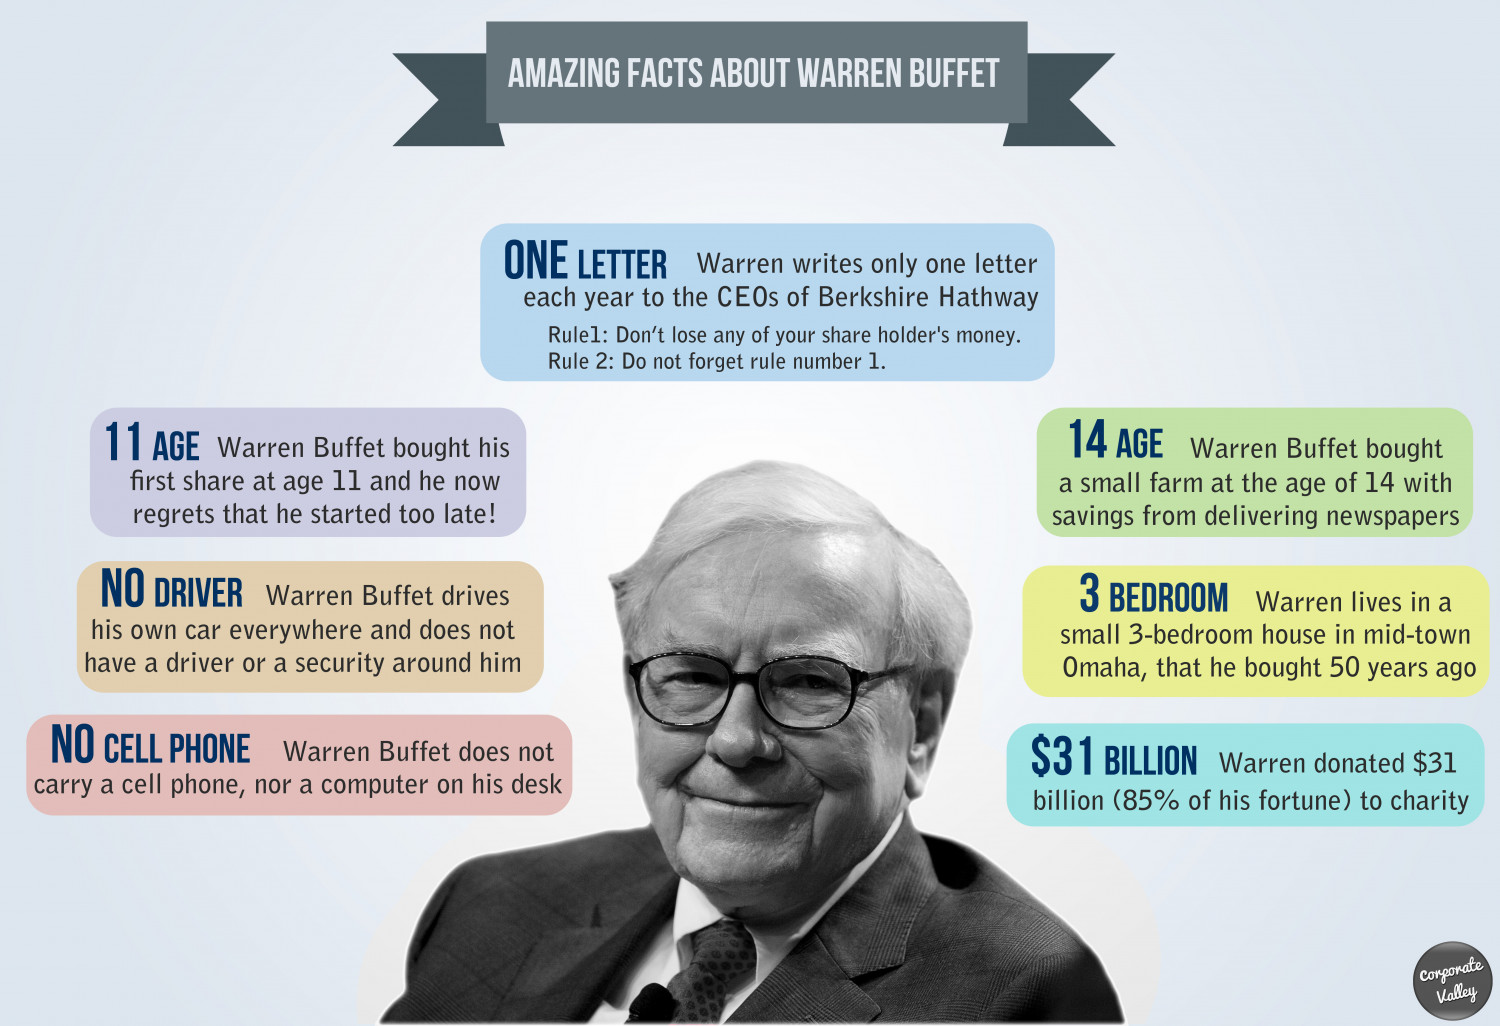 Amazing facts about Warren Buffet Infographic